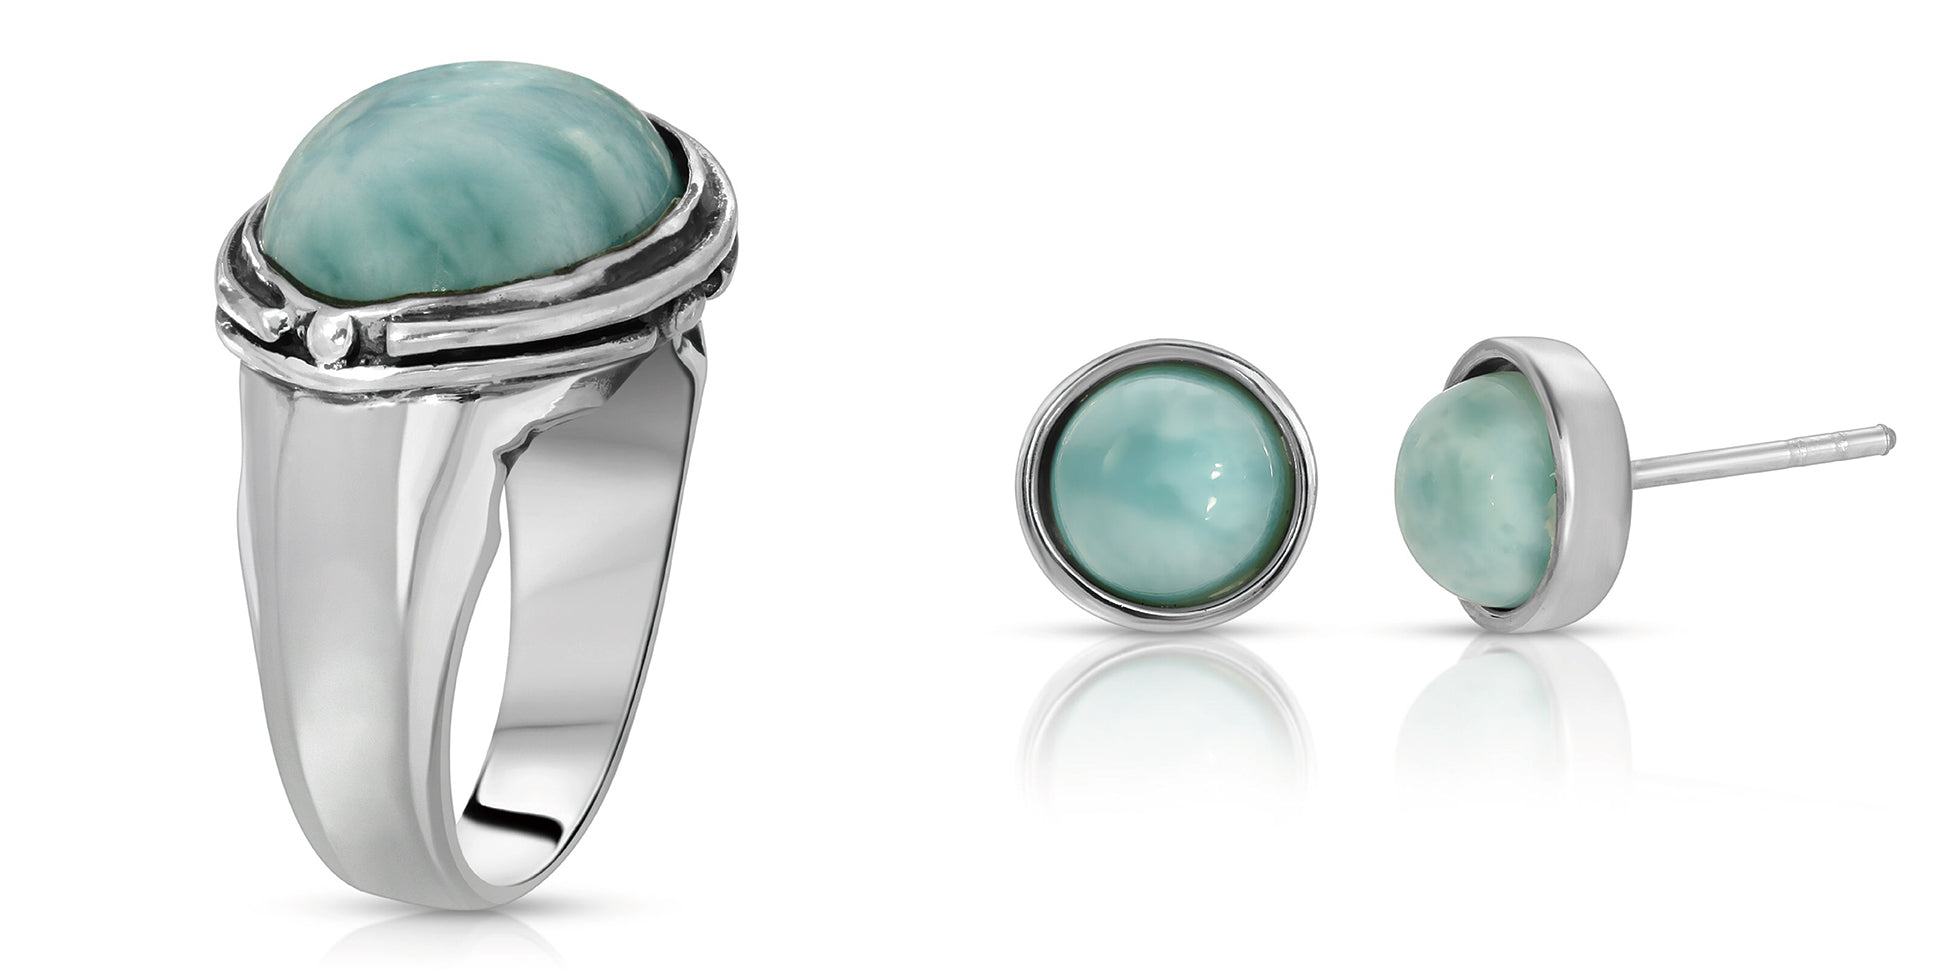 The W Brothers Larimar Oval Ring plus our handcrafted Larimar gemstone Roud Earrings crafted to perfection in premium Grade A Sterling silver. Perfect for female and women fashion accessory, available at www.thewbros.com